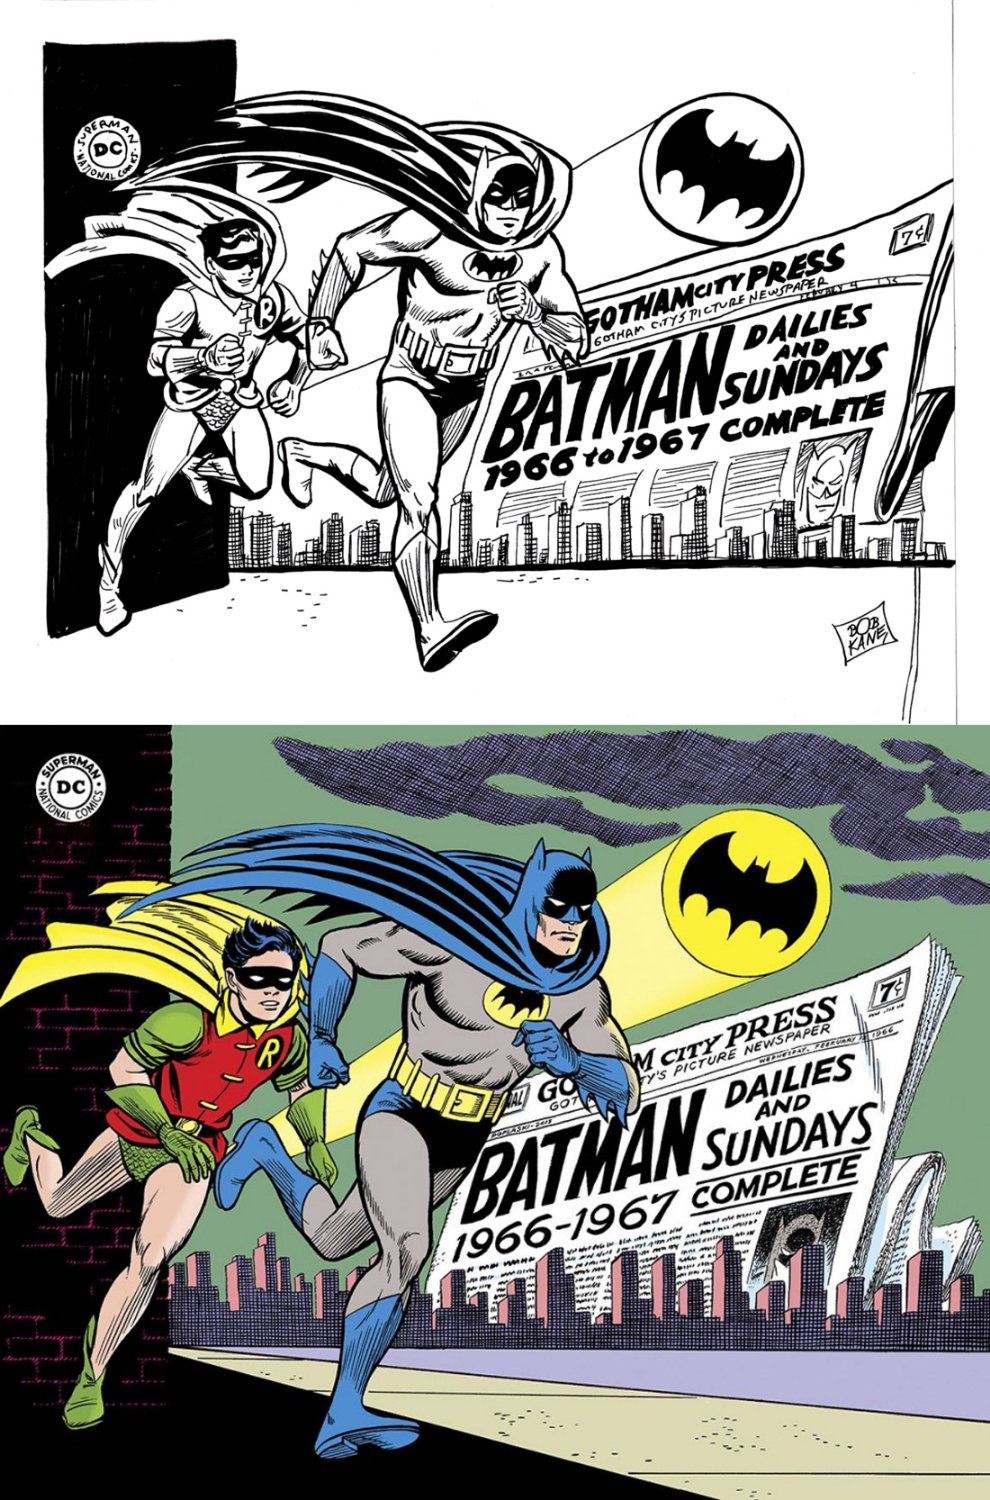 Batman: Dailies & Sundays Cover Mockup (SOLD LIVE ON 'DUELING DEALERS OF COMIC ART' EPISODE #31 PODCAST ON 8-14-2021(RE-WATCH THIS FUNNY ART SELLING SHOW HERE)